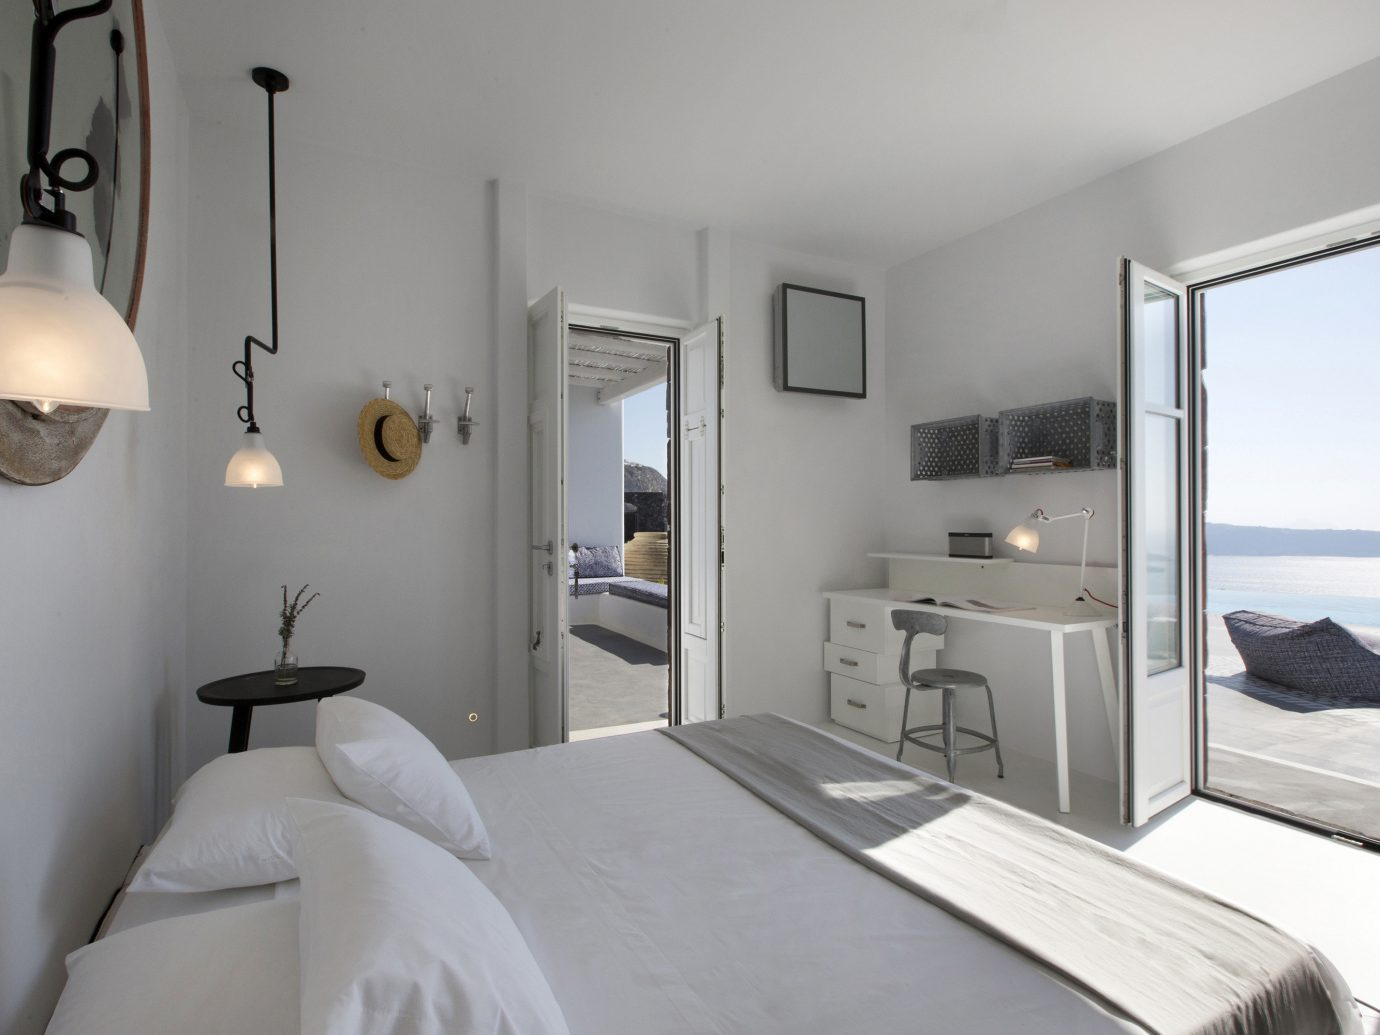 Greece Hotels Santorini wall indoor room mirror bed ceiling scene interior design Bedroom Suite real estate interior designer hotel decorated furniture